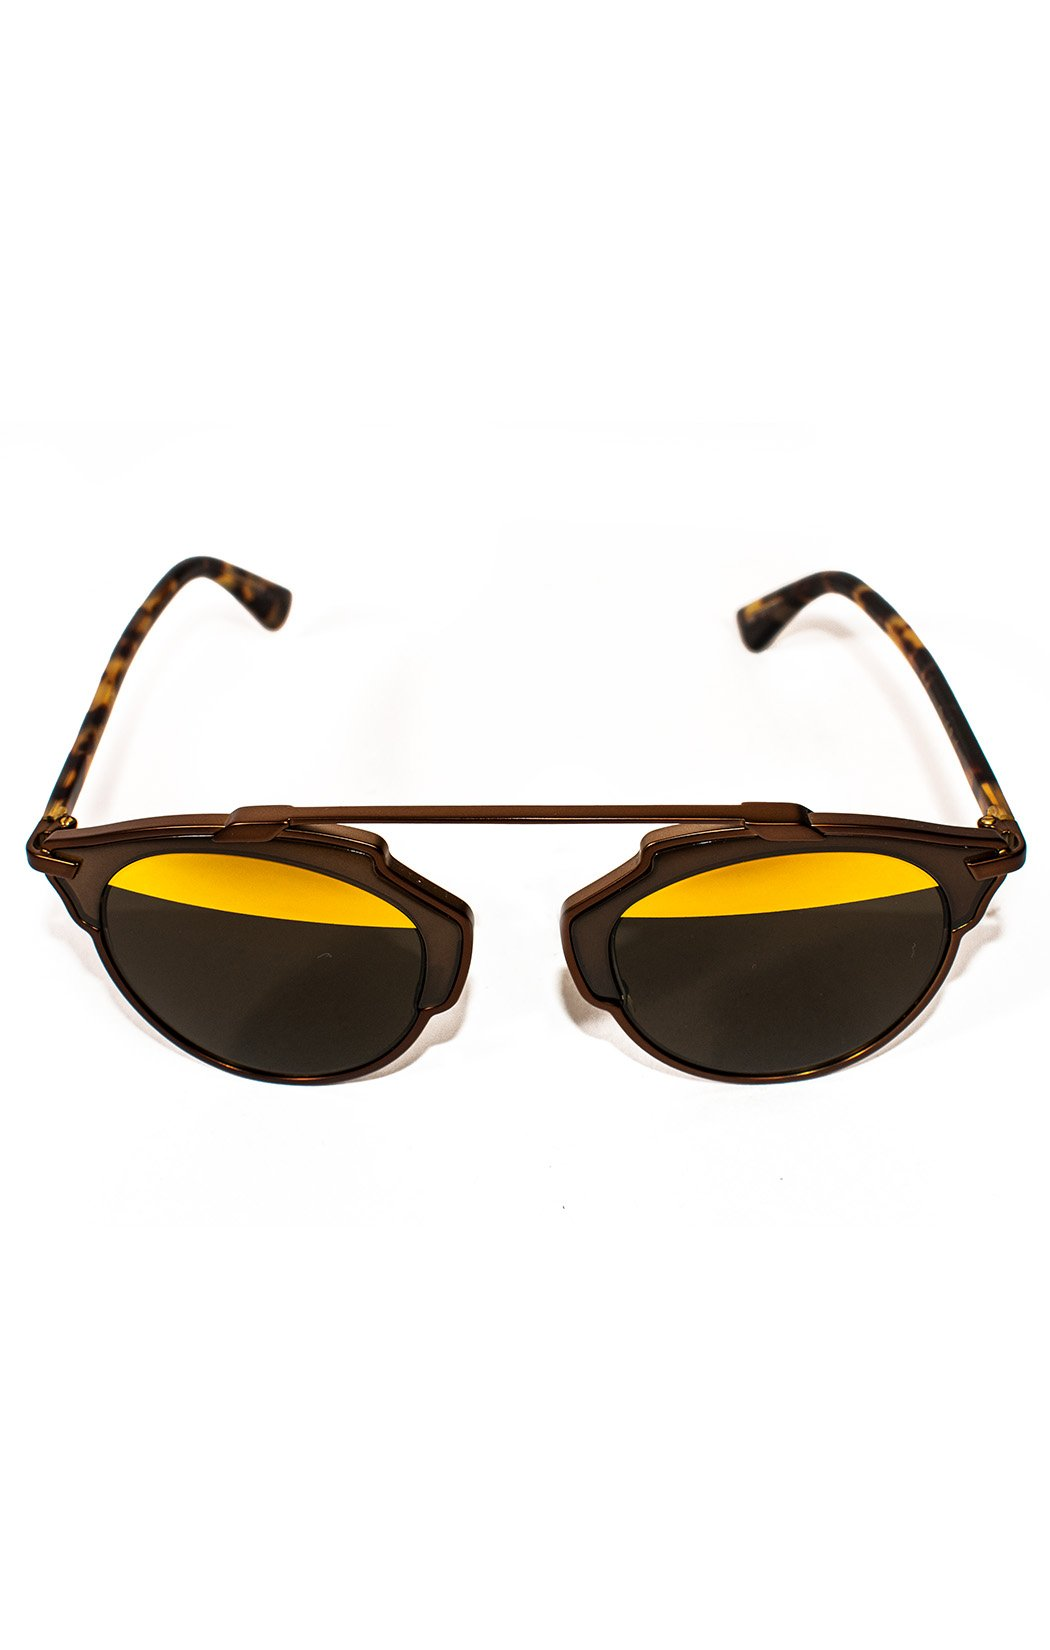 "Front view of CHRISTIAN DIOR Sunglasses Size: H 2"", W 5.5"""